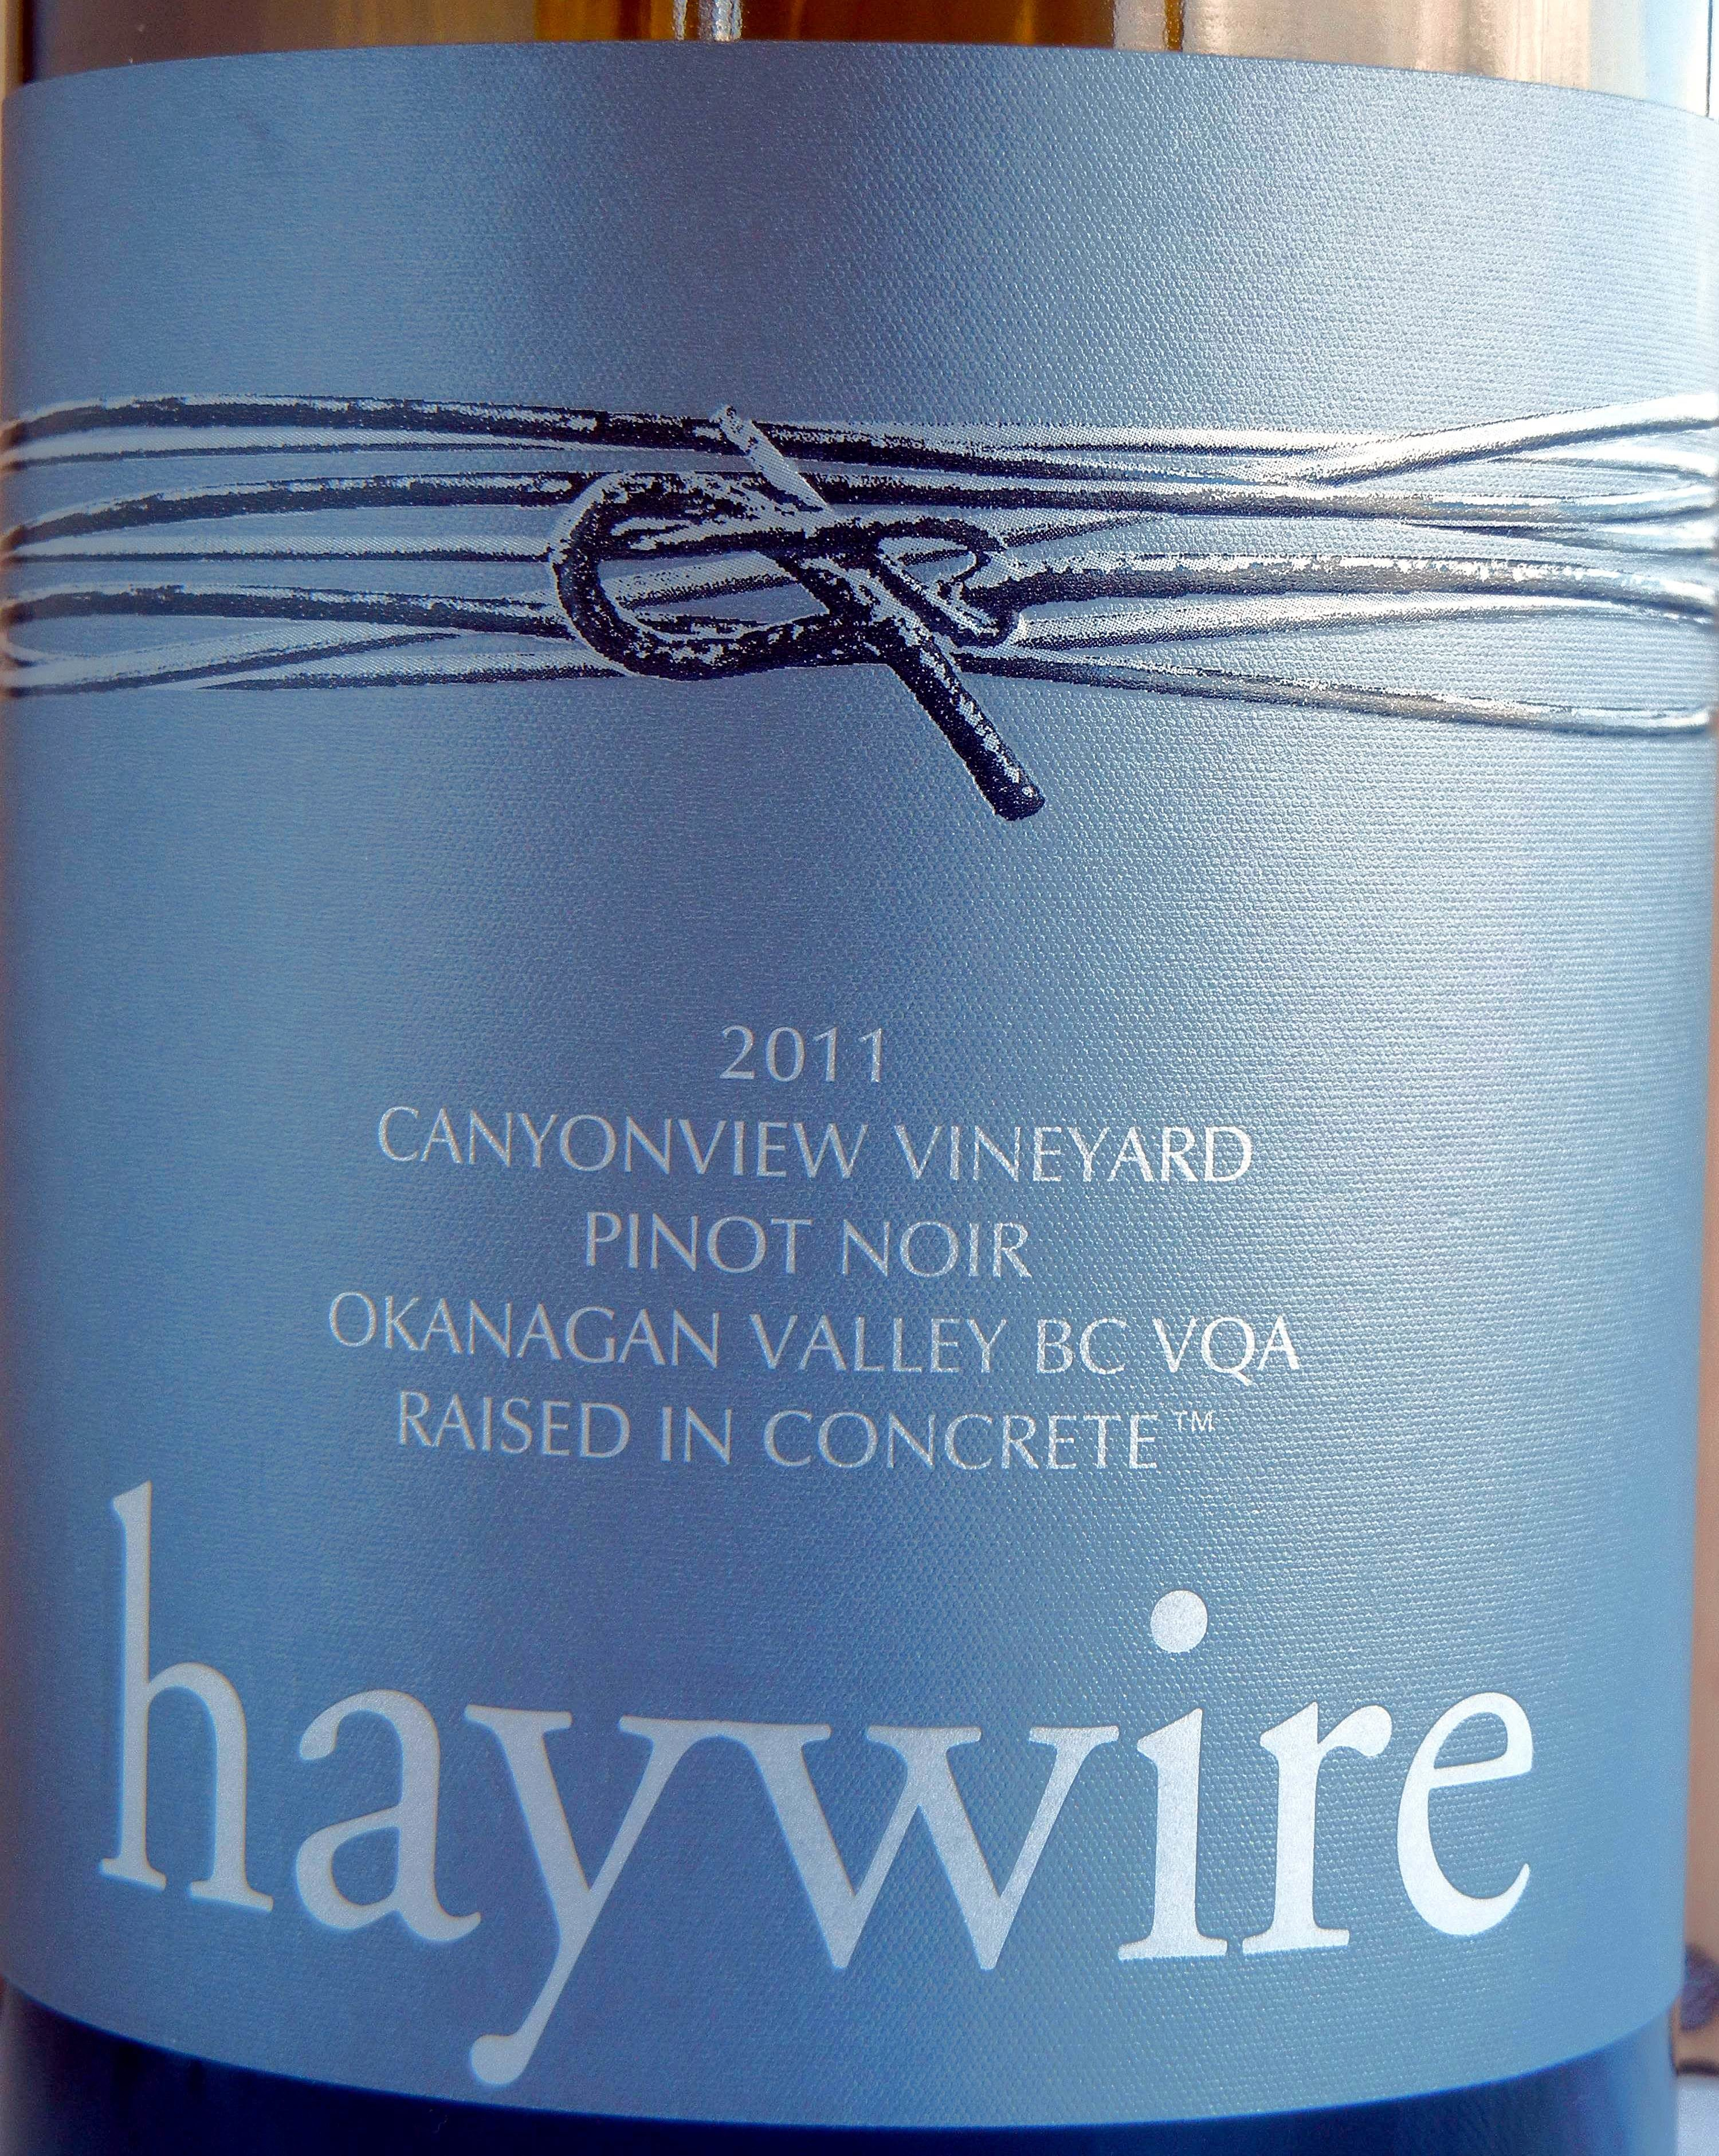 Haywire Canyonview Pinot Noir 2011 Label - BC Pinot Noir Tasting Review 13